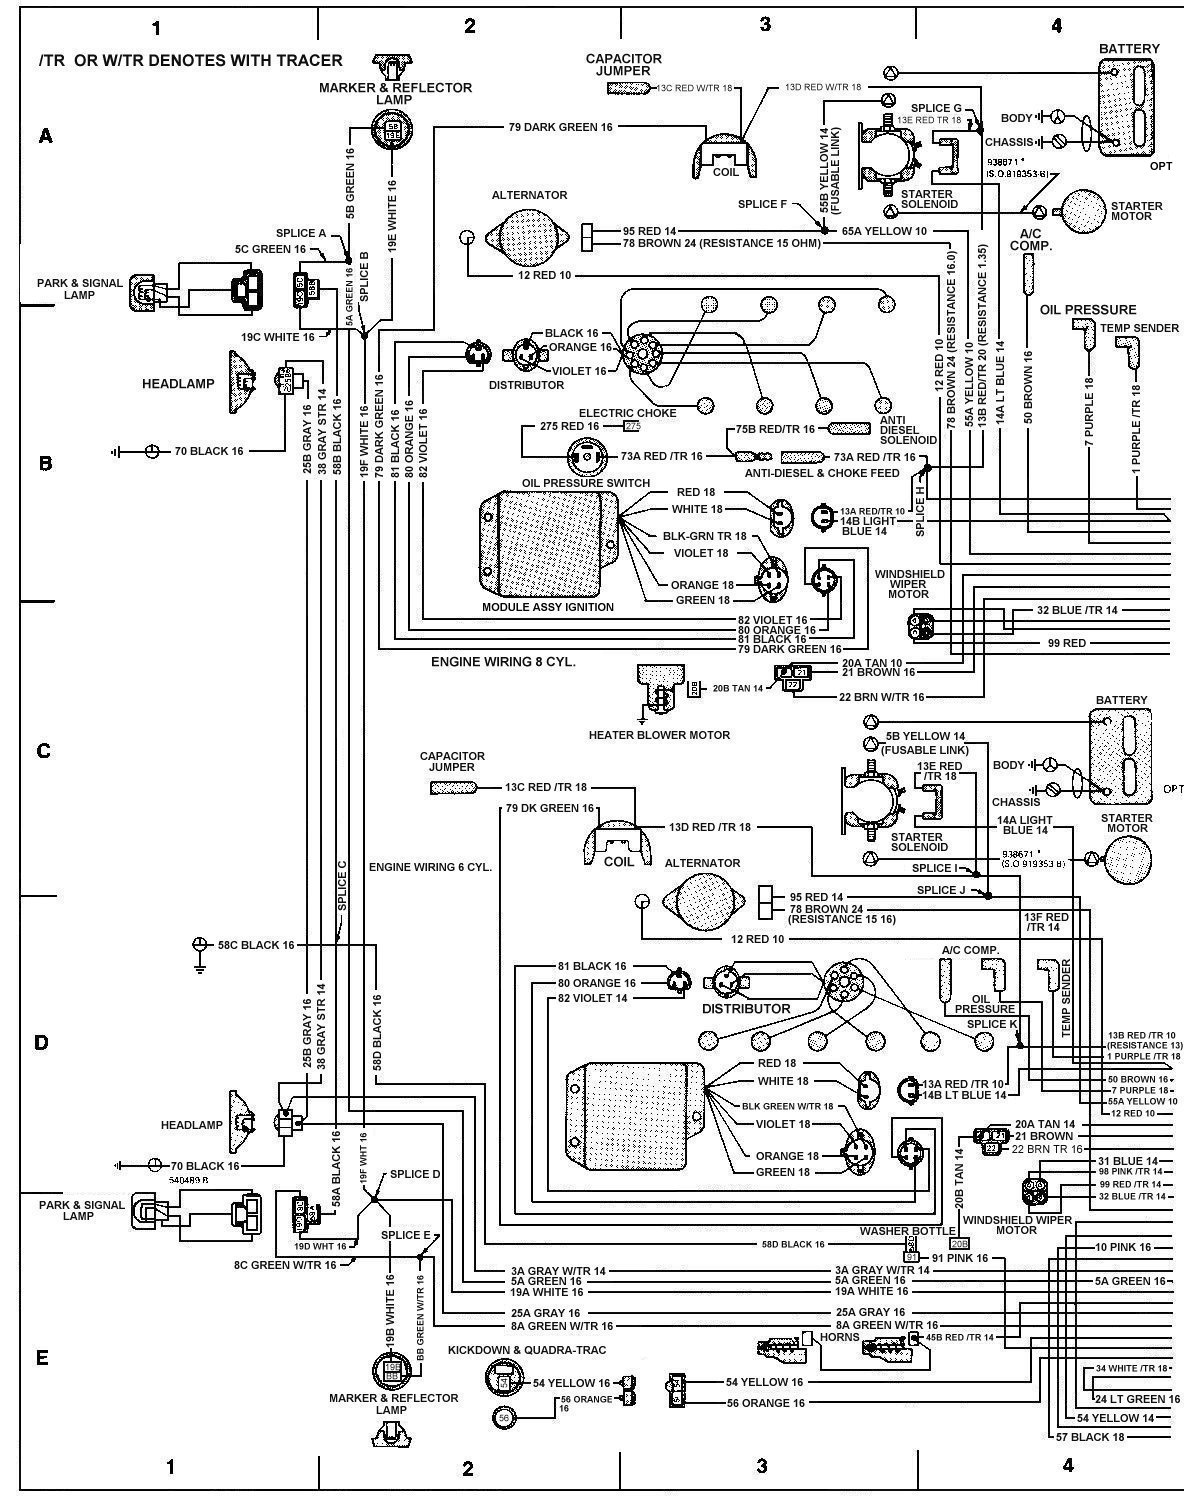 1980 Chevy Radio Wiring Diagram Guide And Troubleshooting Of 1970 Gm 81 Imageresizertool Com Pick Up